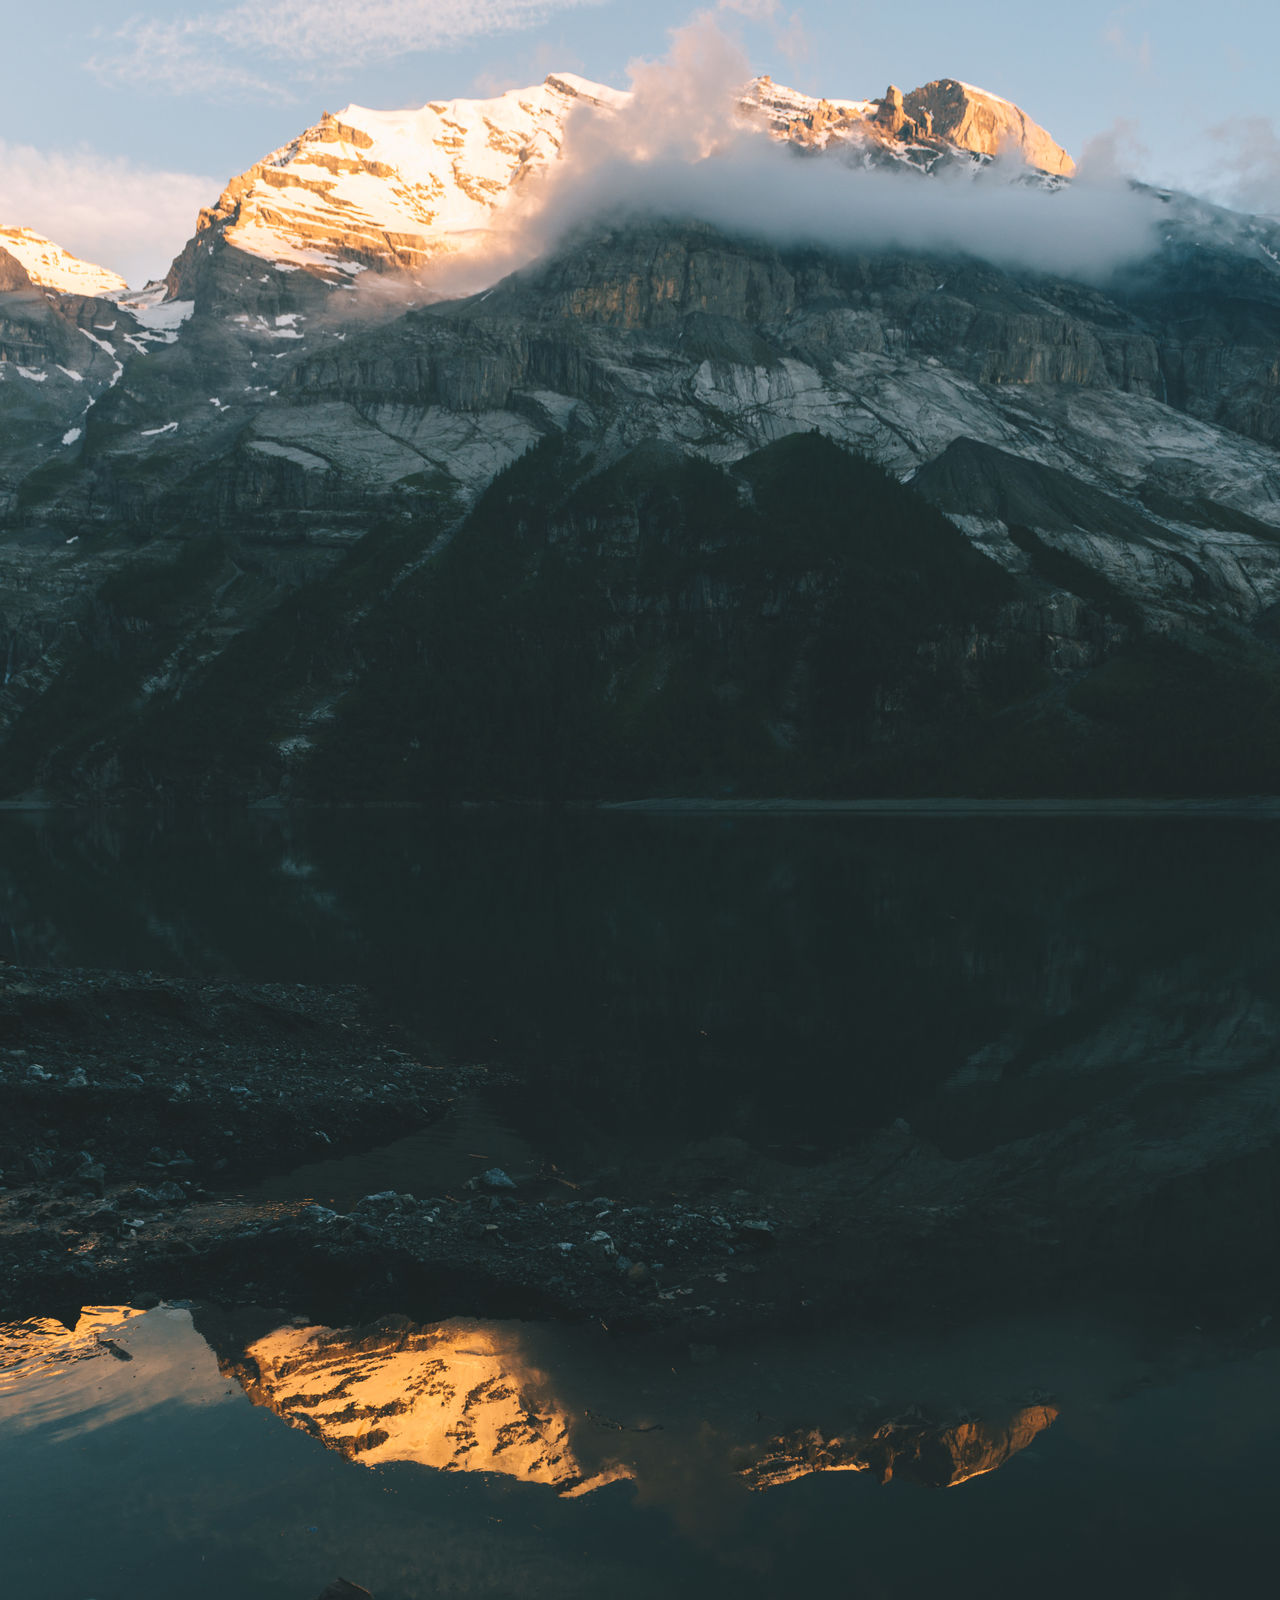 Reflection of Sunset at mountain lake Aerial View Backgrounds Beauty In Nature Day Eye4photography  EyeEm Gallery EyeEm Nature Lover Fog Ice Lake Landscape_Collection Landscape_photography Mountain Mountain Range Nature No People Outdoors Reflection Scenics Sky Space Sunset Water